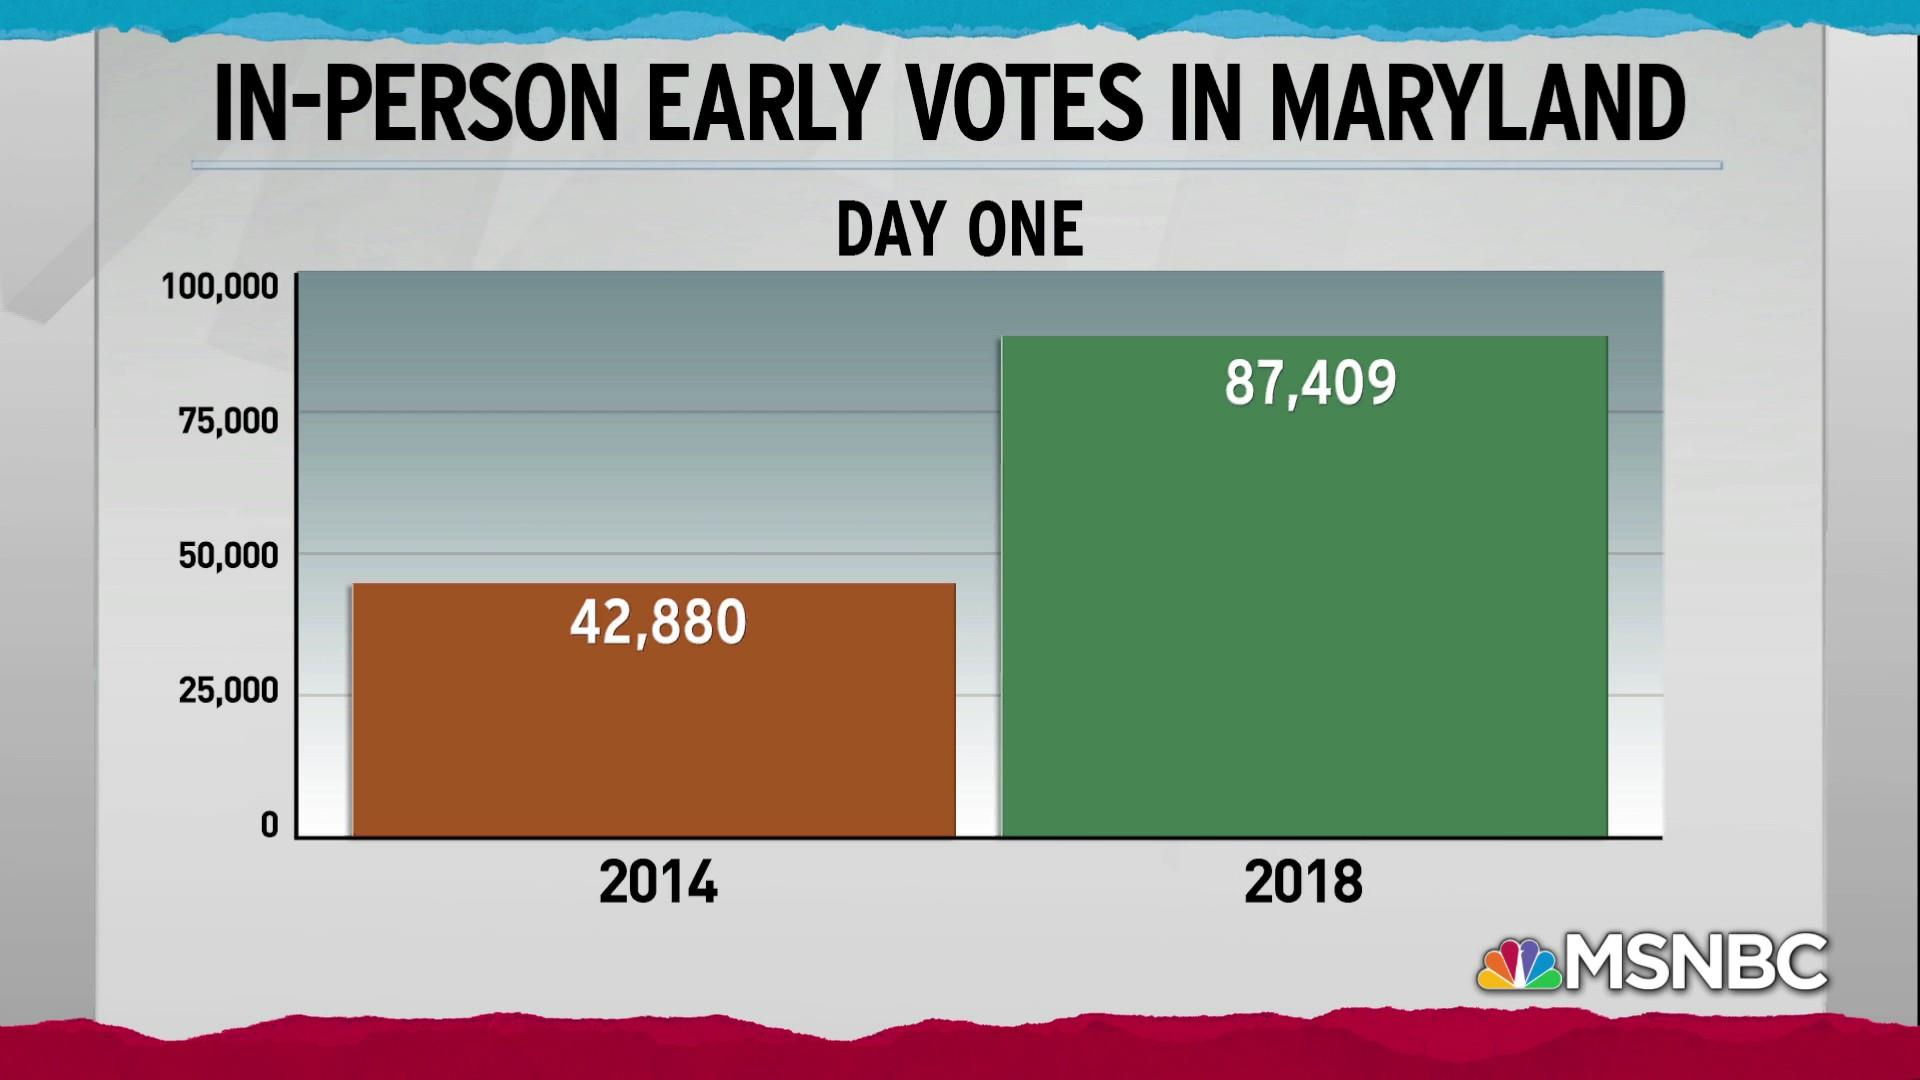 First day of early voting in Maryland more than double 2014